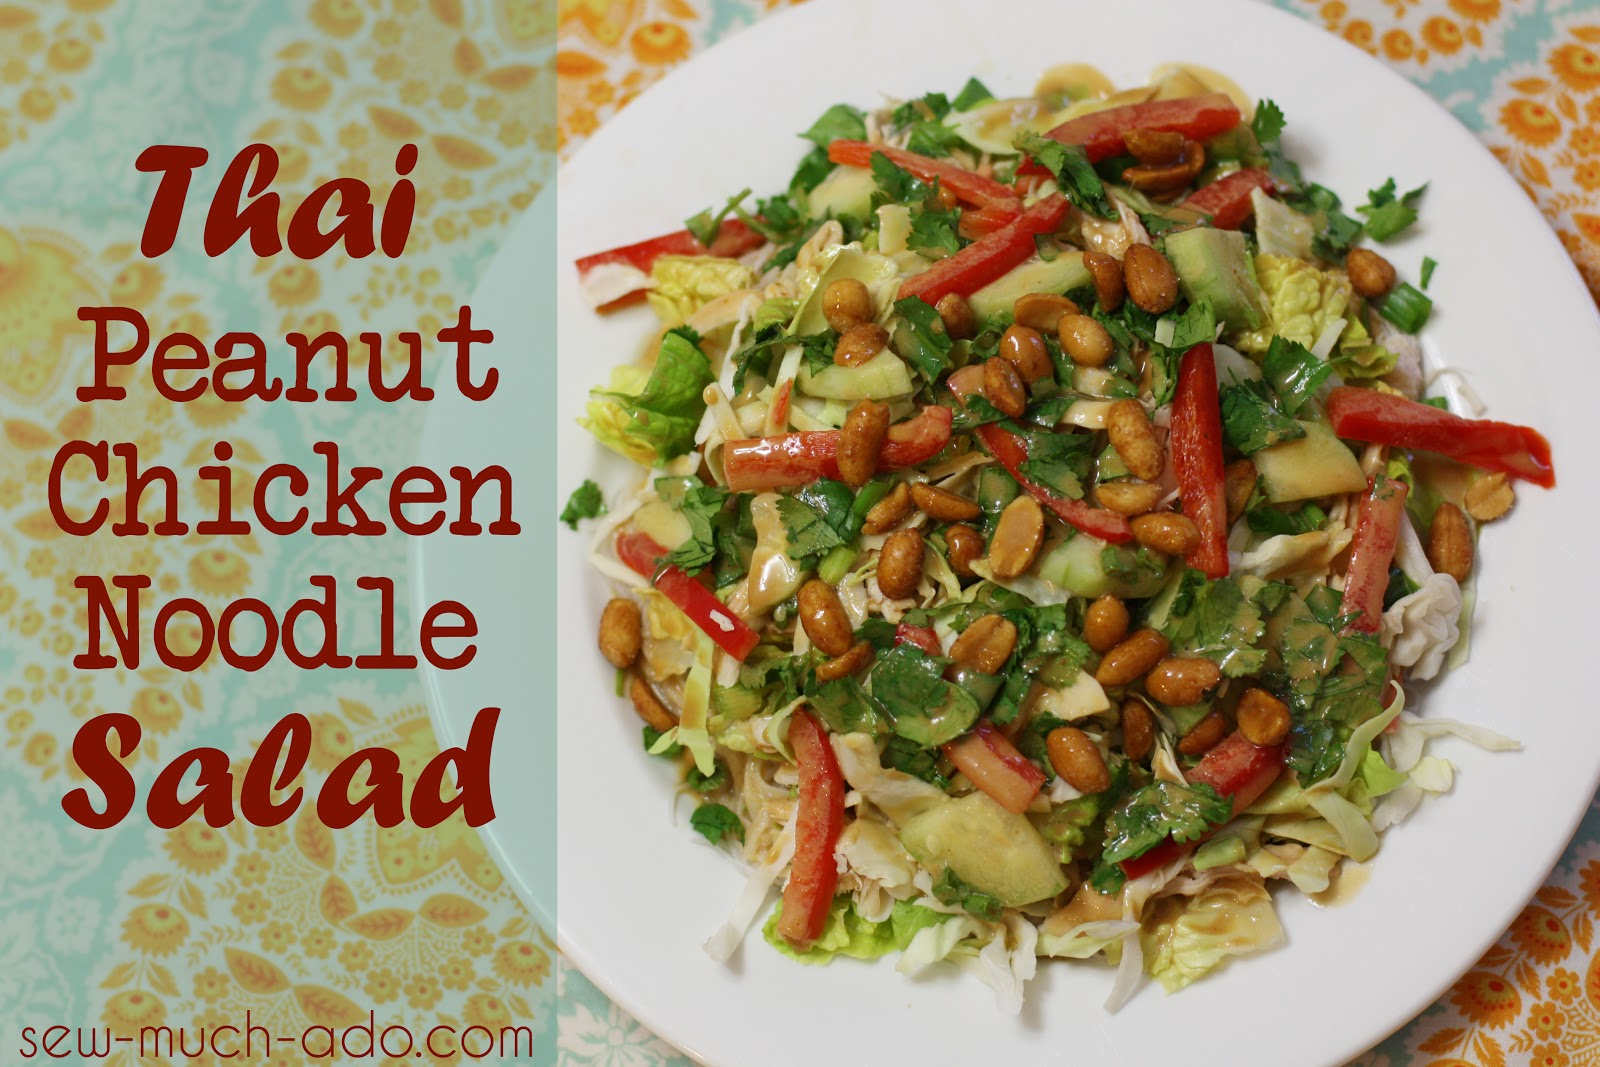 Thai Peanut Chicken Noodle Salad Recipe - Sew Much Ado